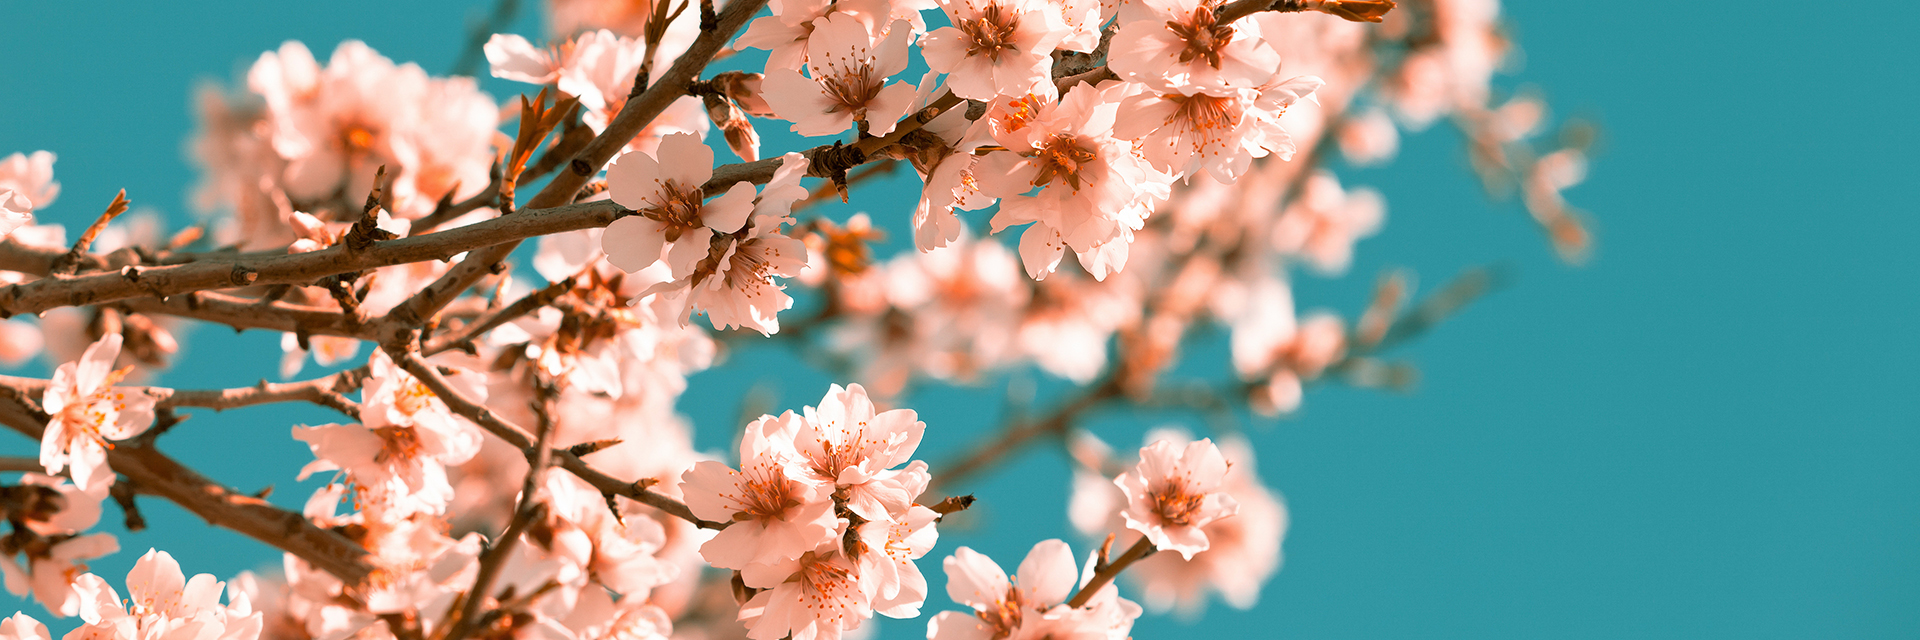 Auburn-Horticulture-Department-pink-flowers-blooming-peach-tree-at-spring-blue-sky-sm